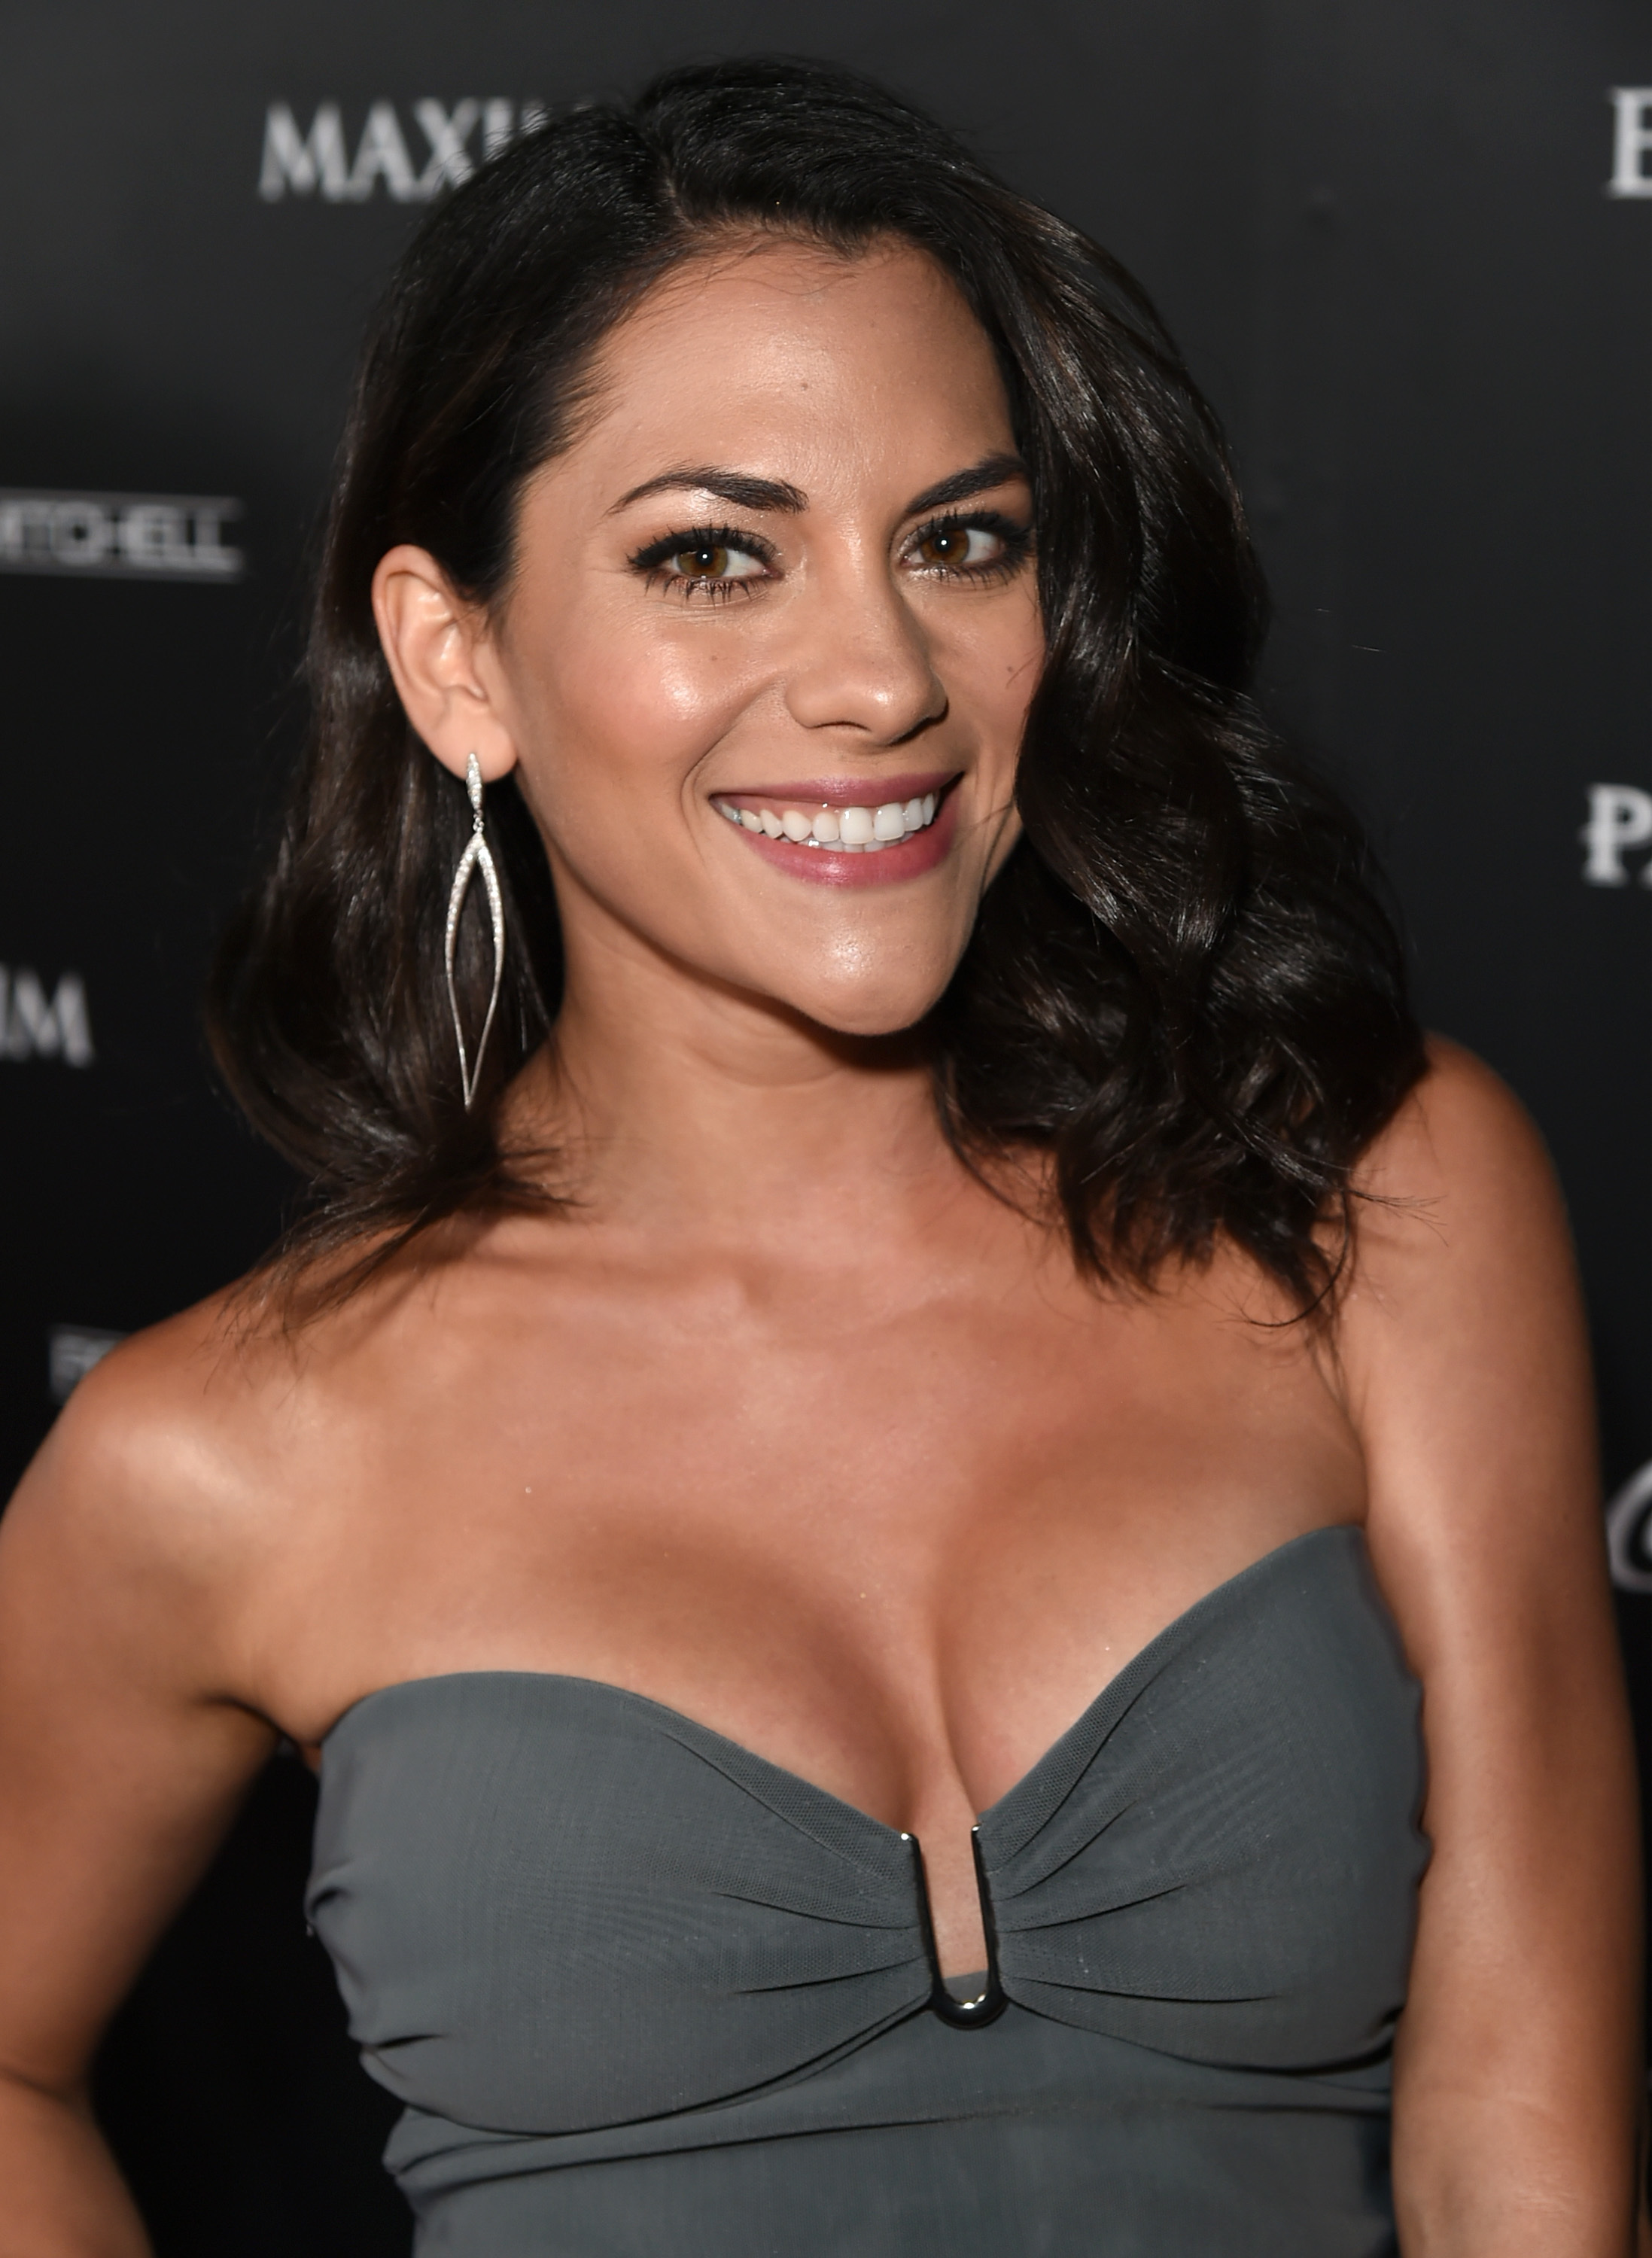 Inbar Lavi Maxims Hot Women Of Celebration